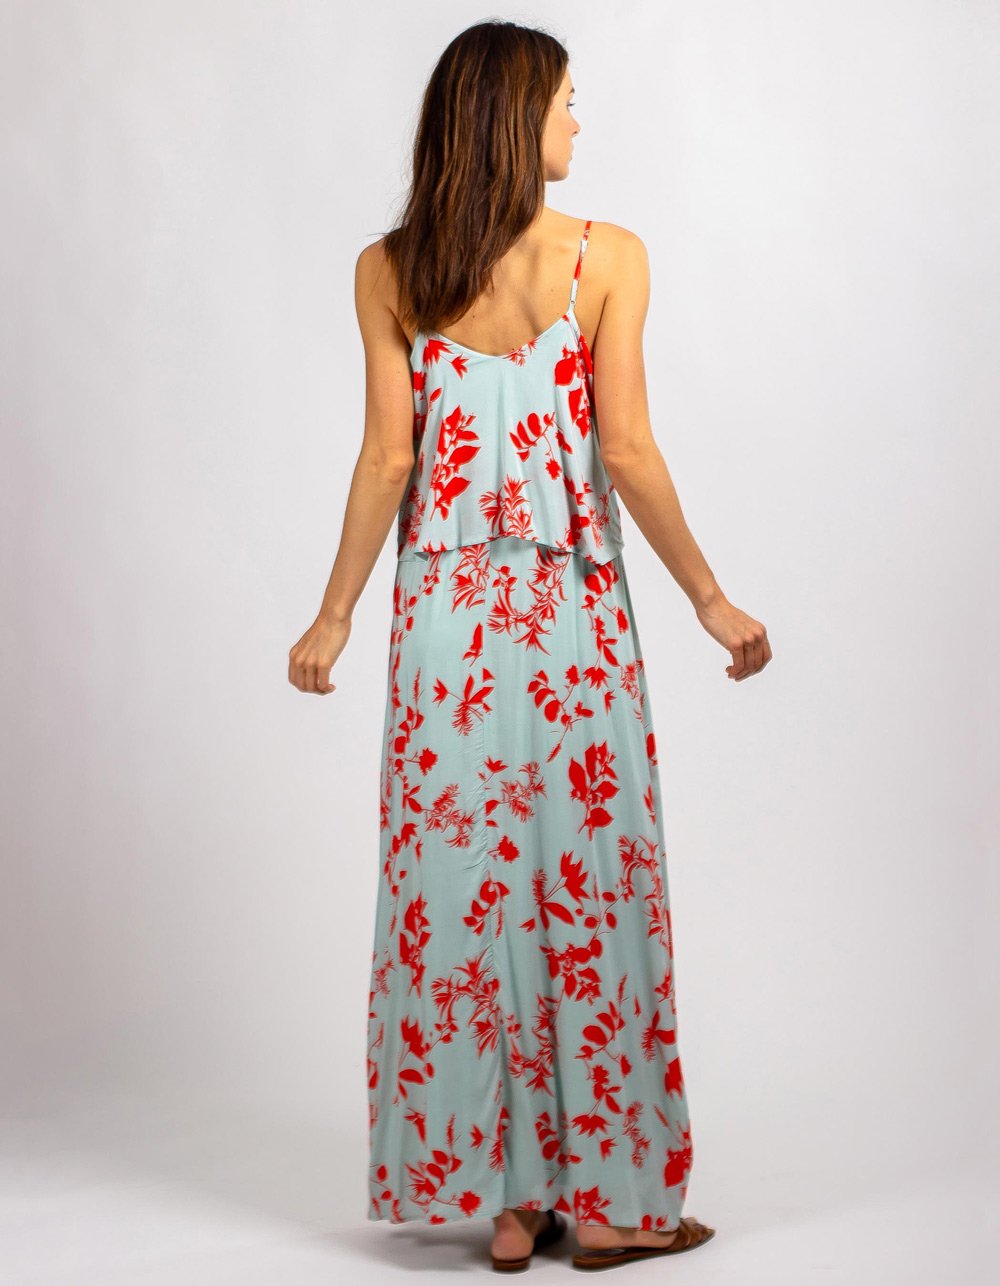 Vestido largo estampado floral - Backside